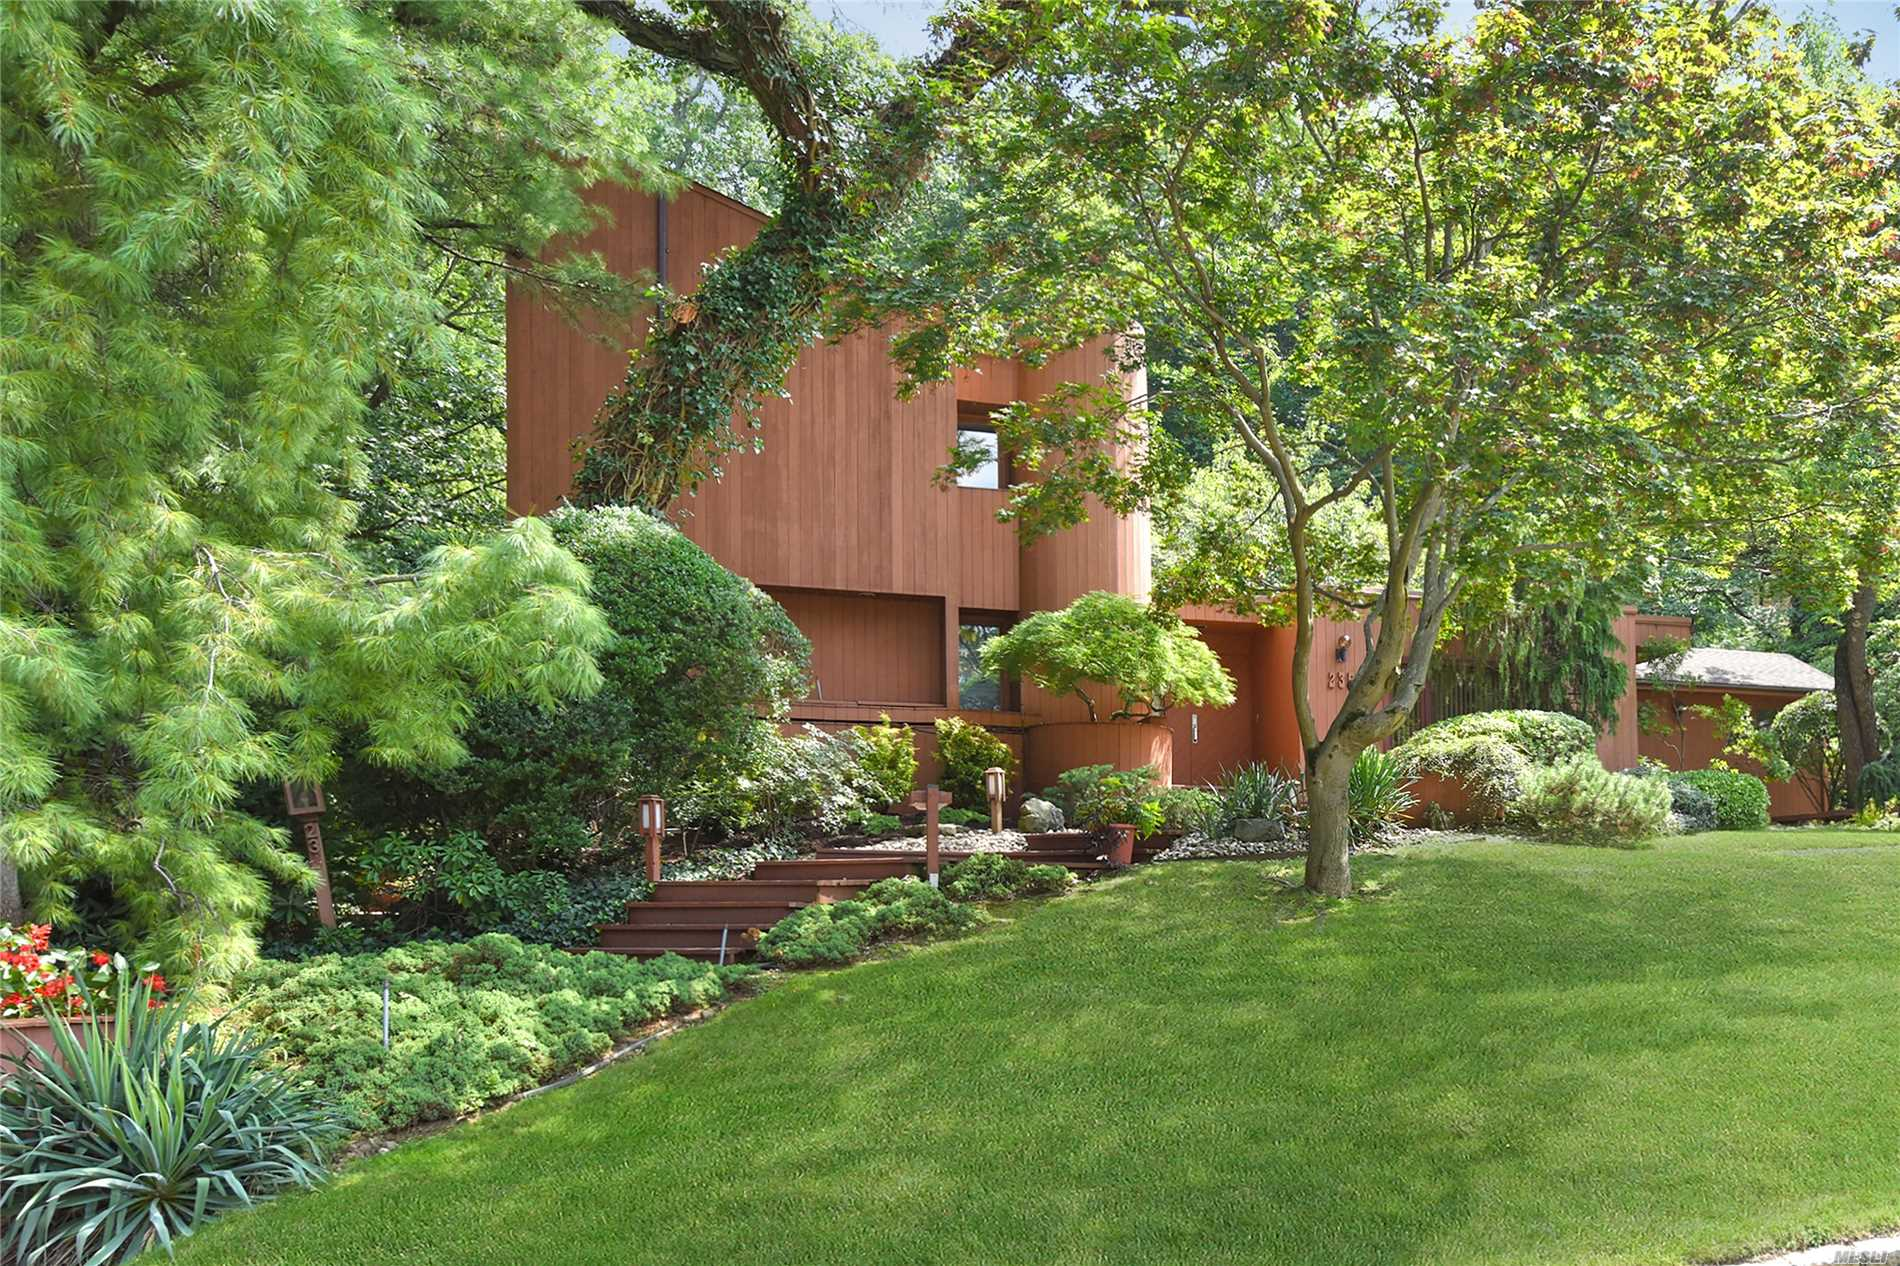 Photo of home for sale at 235 Chestnut Dr, East Hills NY